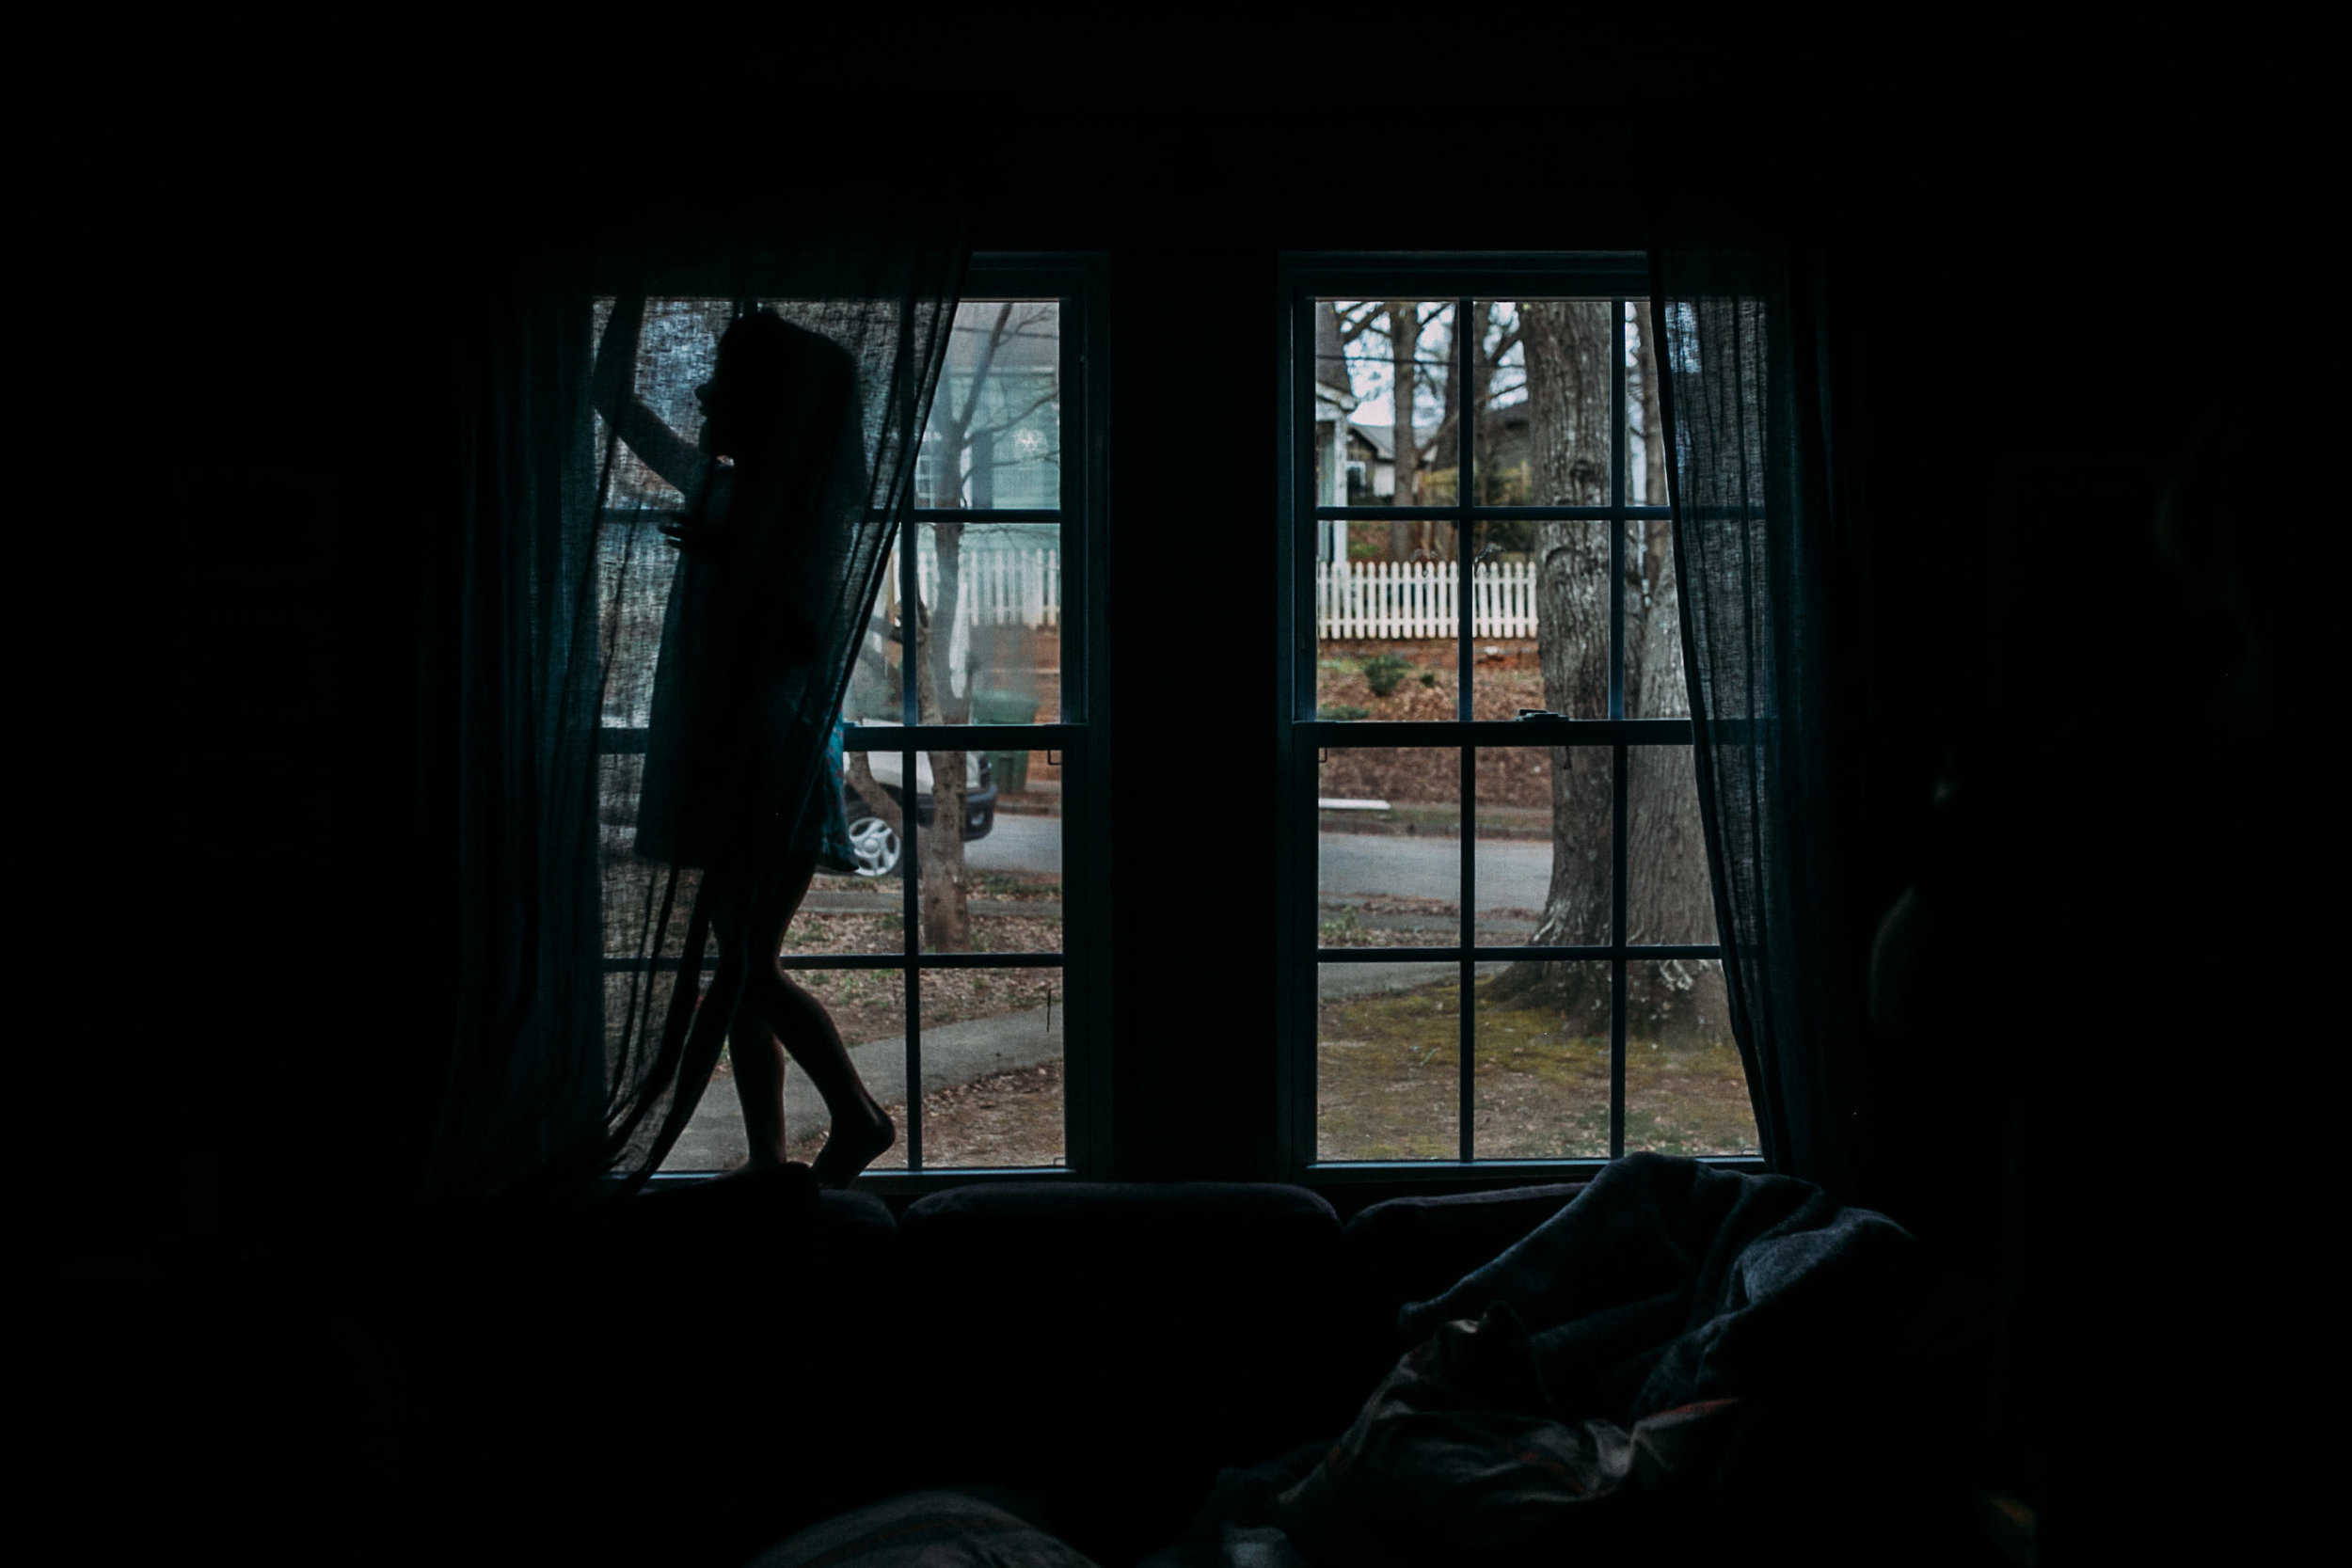 A girl stands in a window behind a curtain